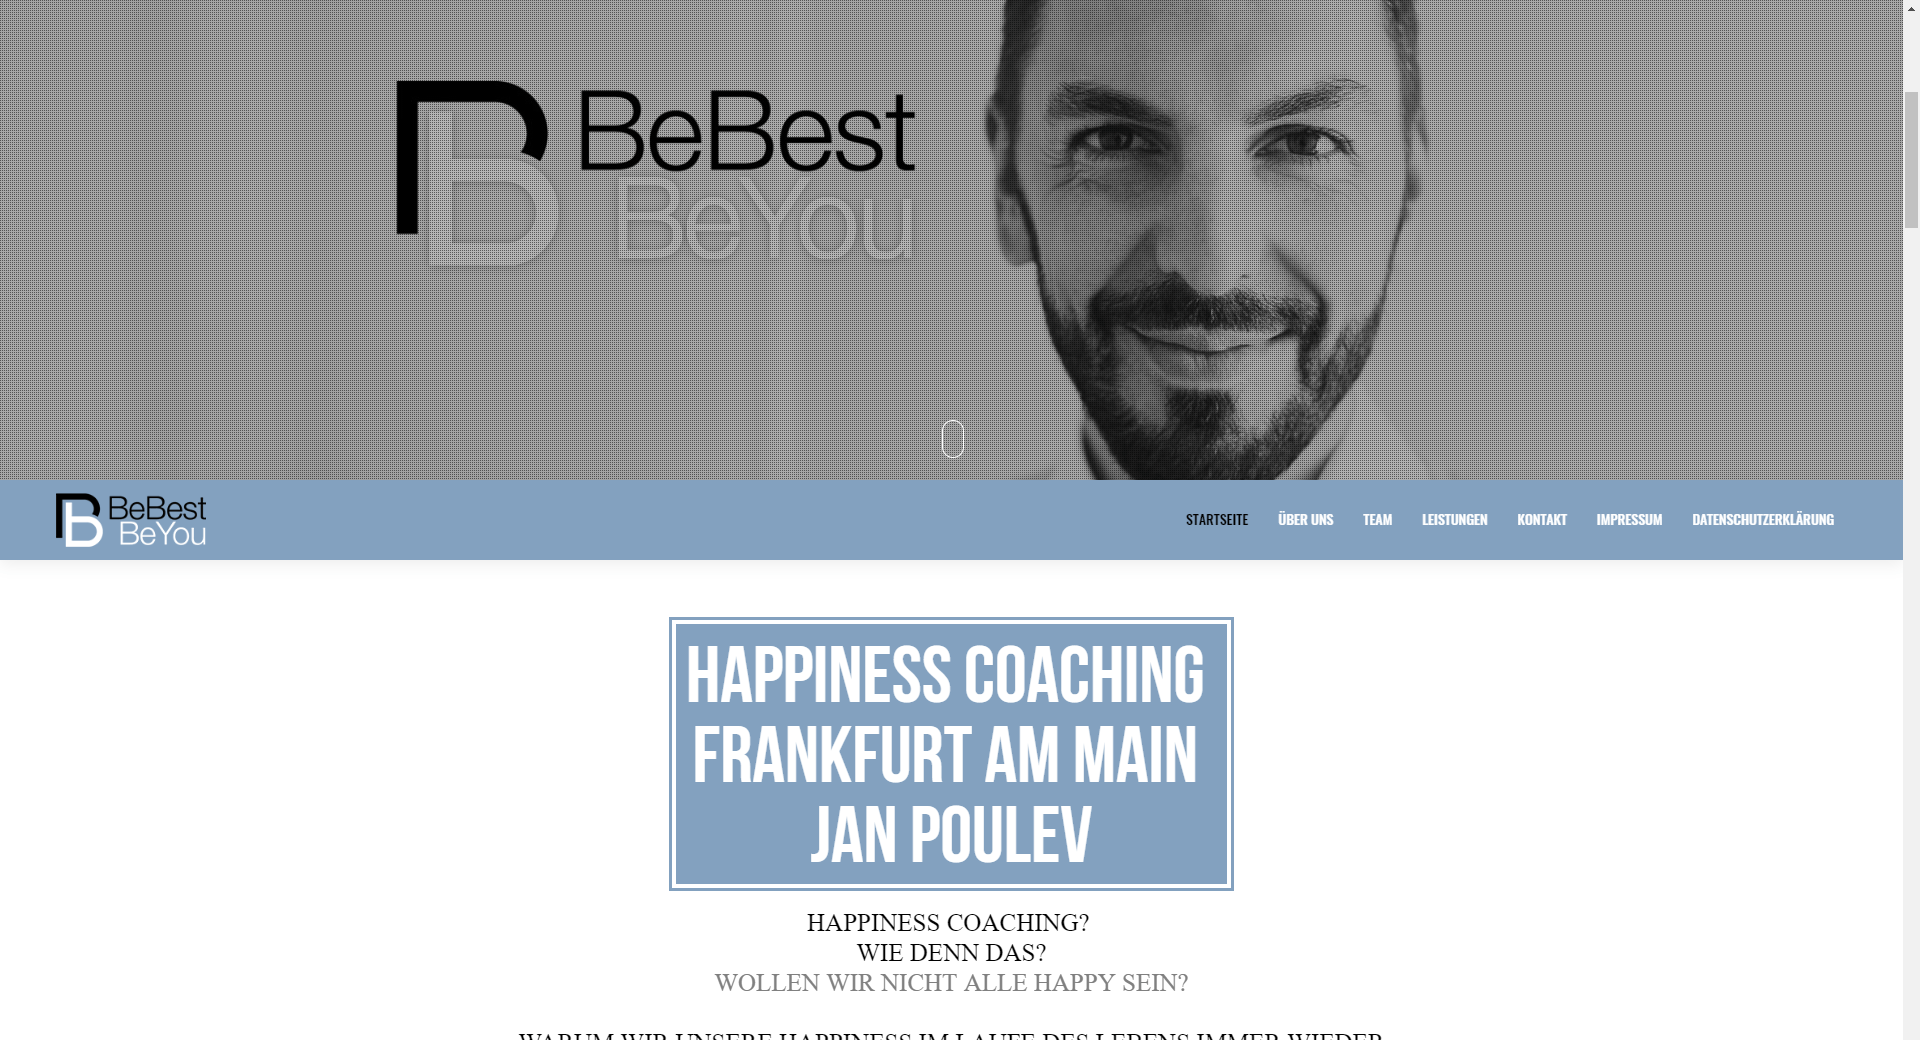 ScreenShot 028 Jan Poulev LIFE COACHING in FRANKFURT AM MAIN Business Happiness - Google Chrome